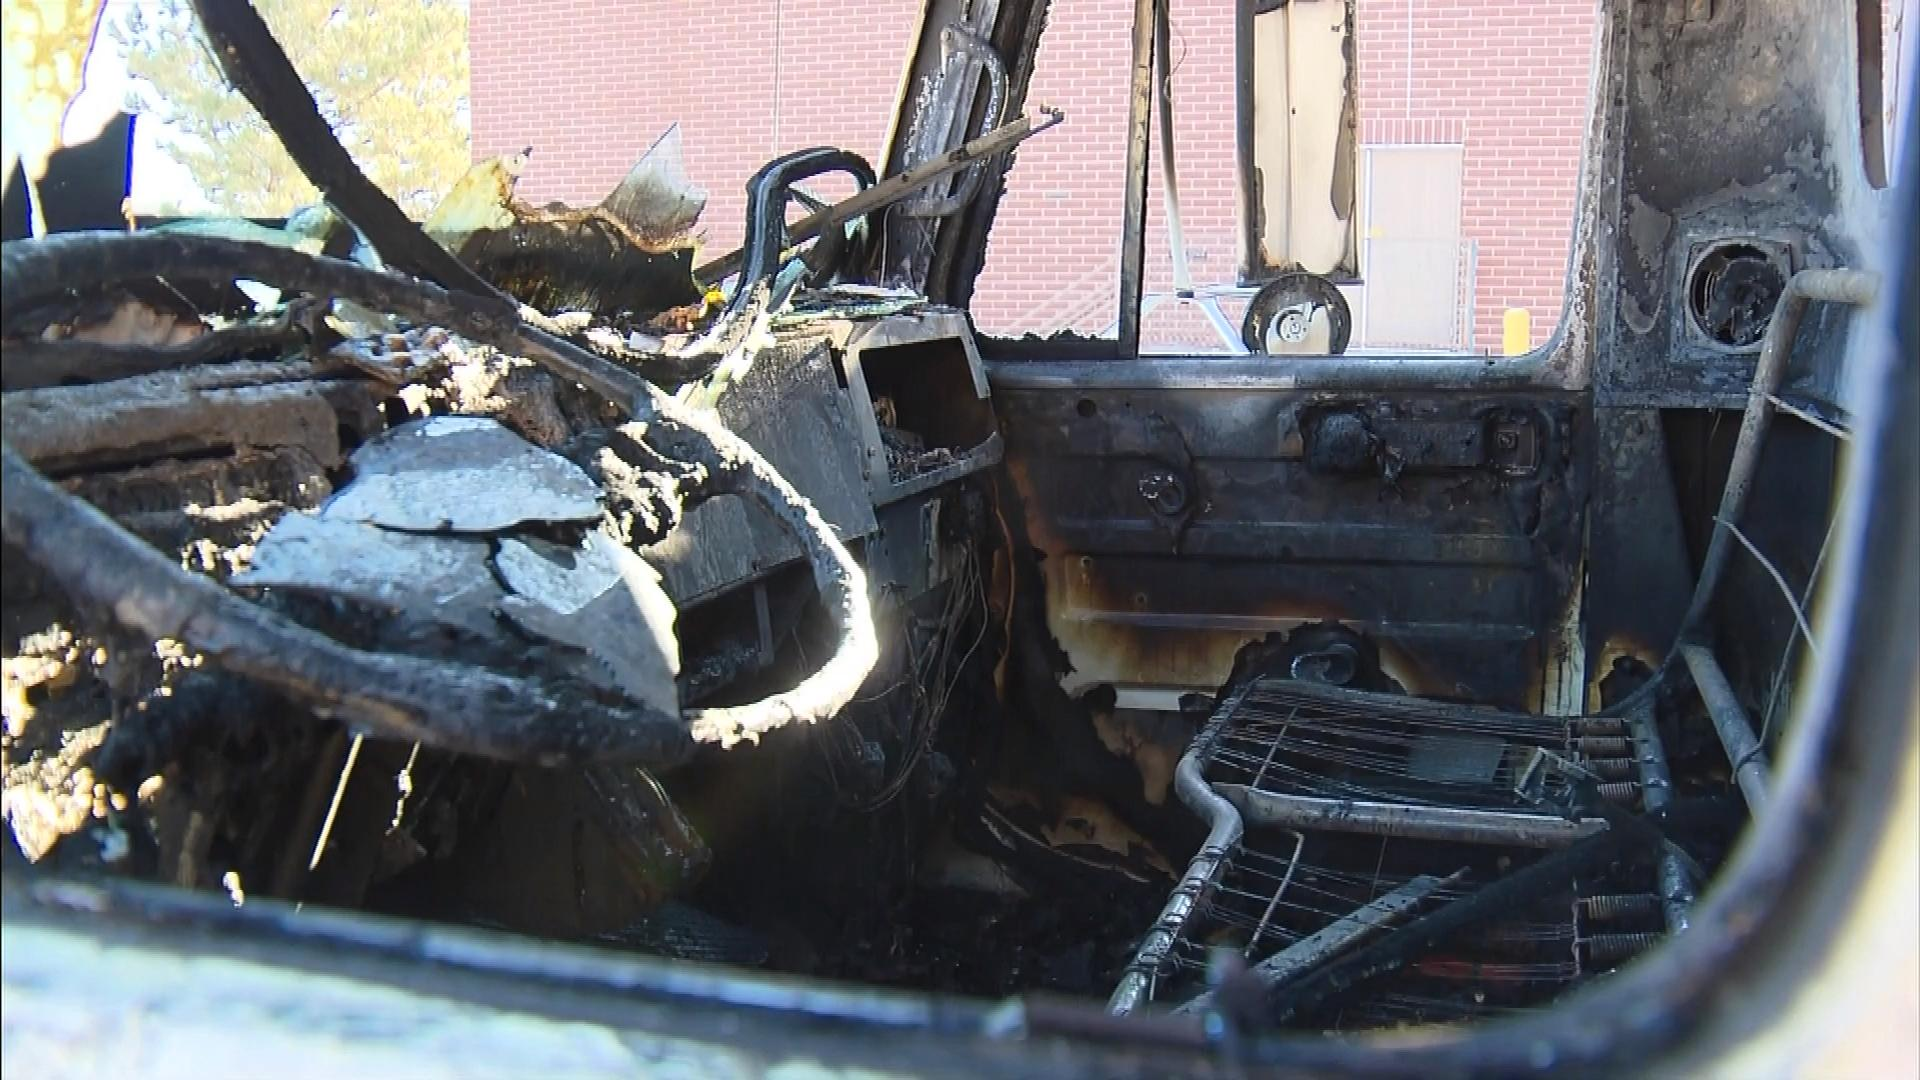 Mohammed Almosawi's burned out truck (credit: CBS)